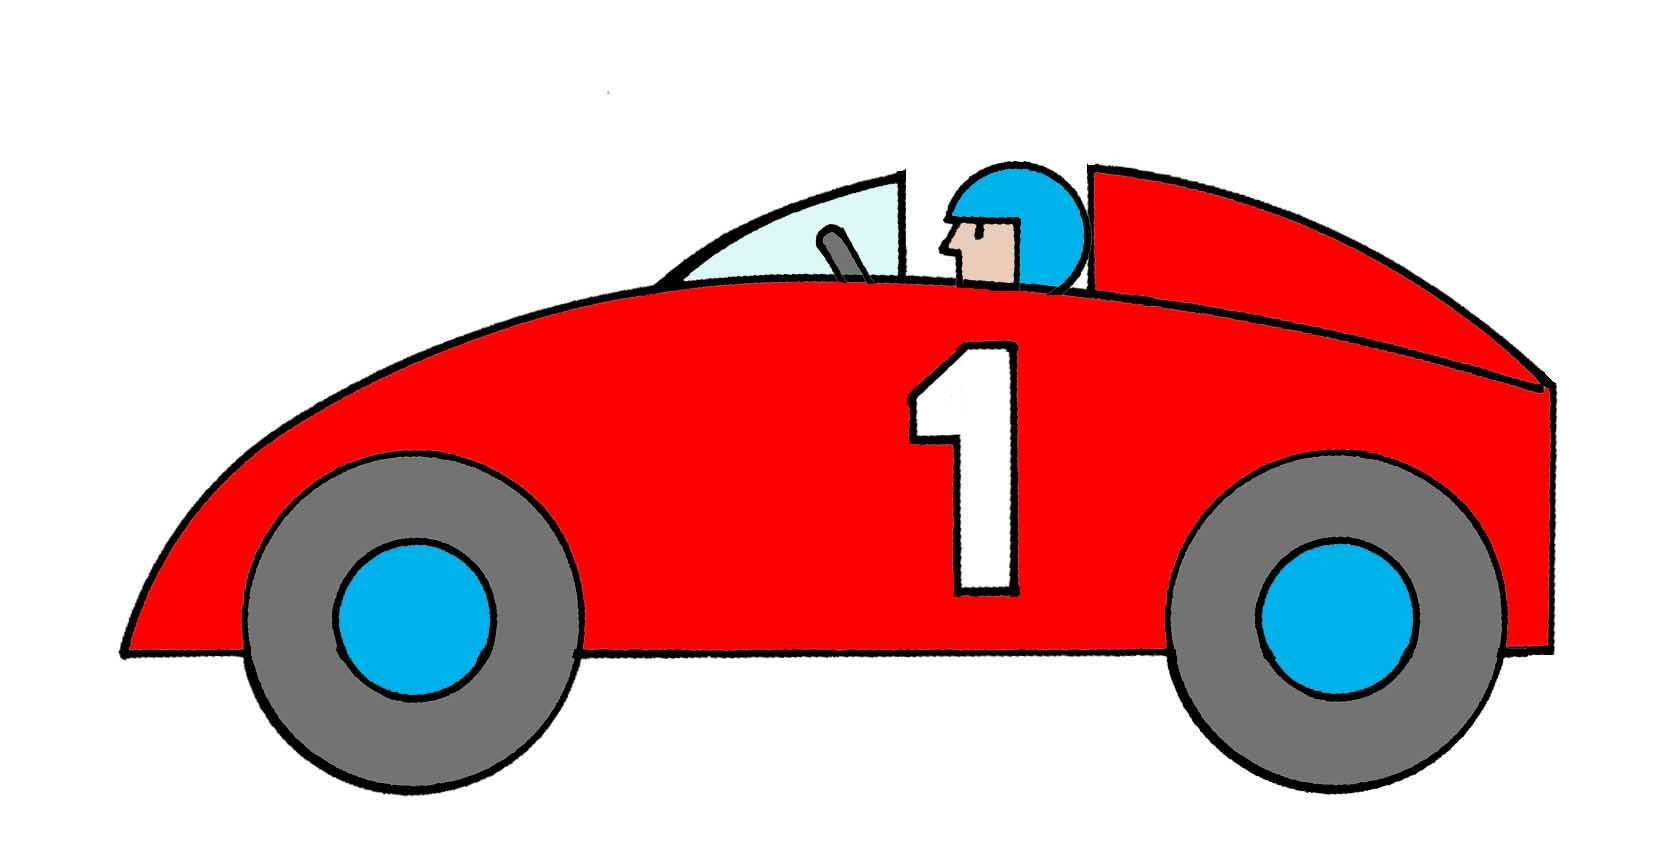 Racecar clipart picture royalty free stock Animated Race Car Clipart | Free download best Animated Race Car ... picture royalty free stock